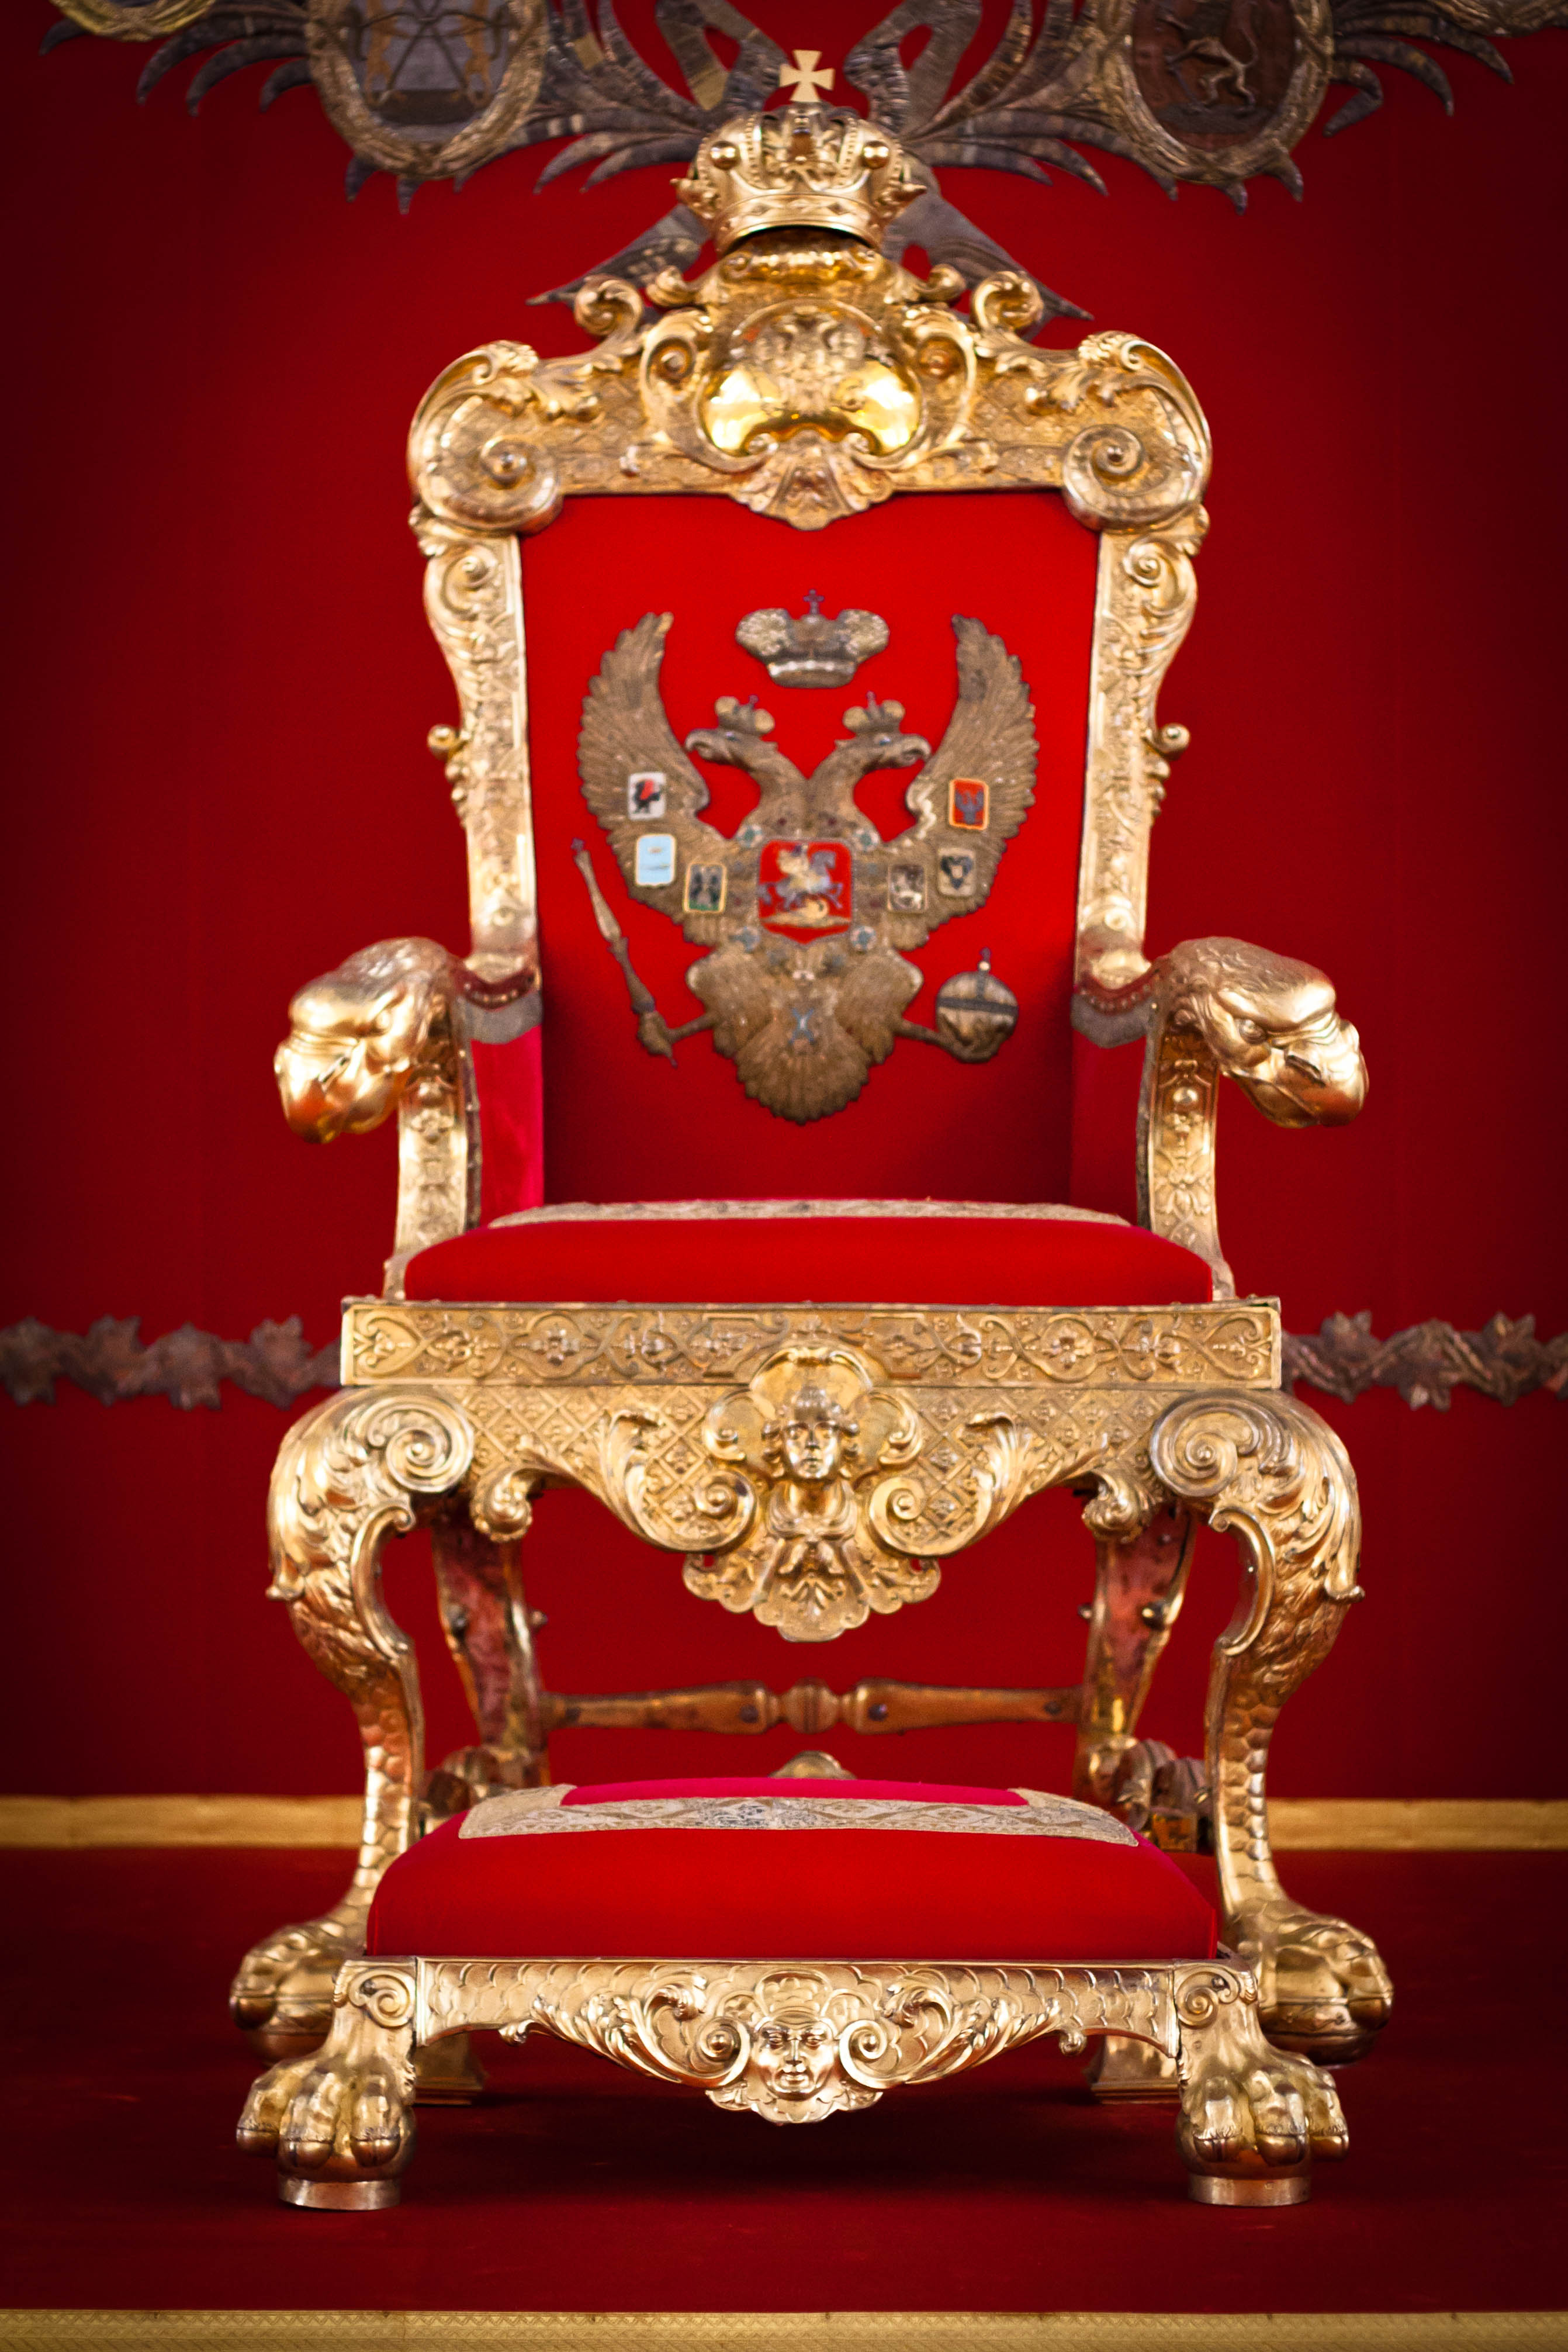 Pics photos king throne chair - Saint George Hall The Throne Room In The Hermitage